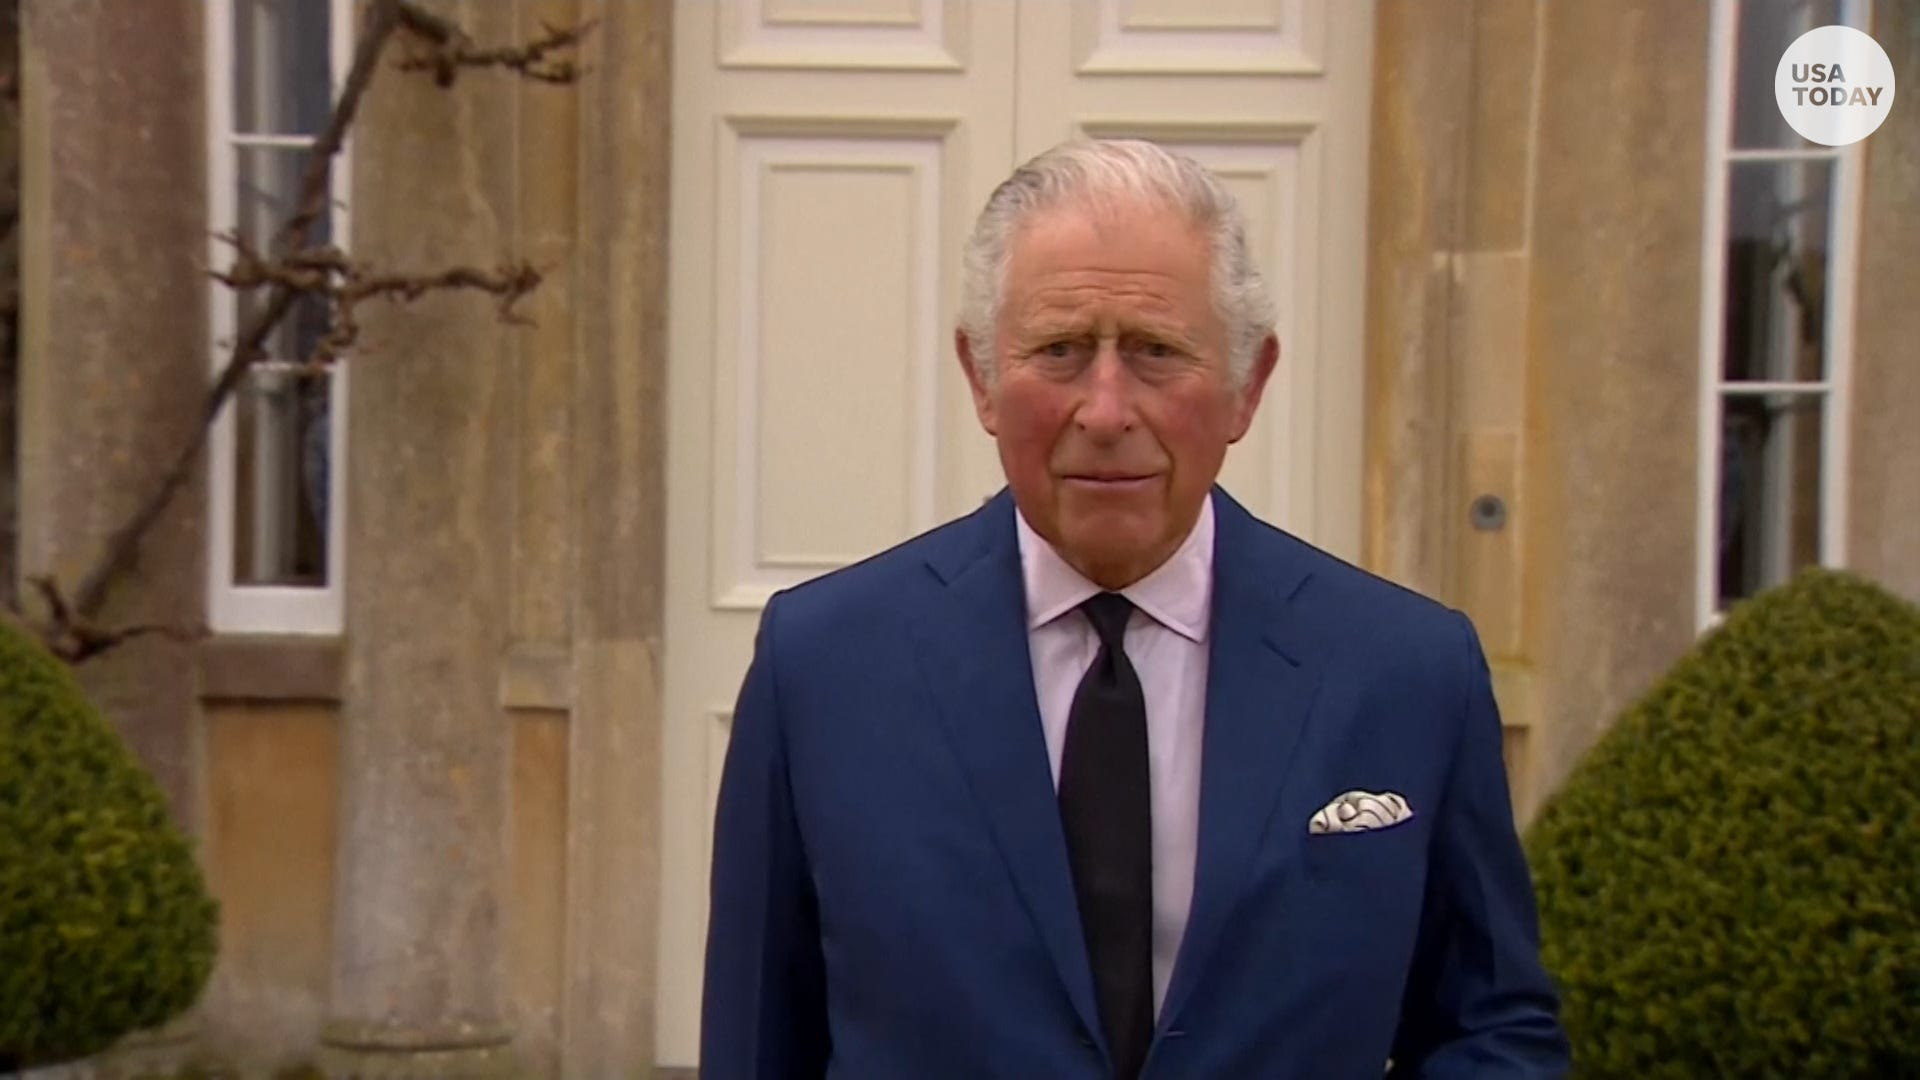 'Miss my father enormously': Prince Charles remembers the late Prince Philip